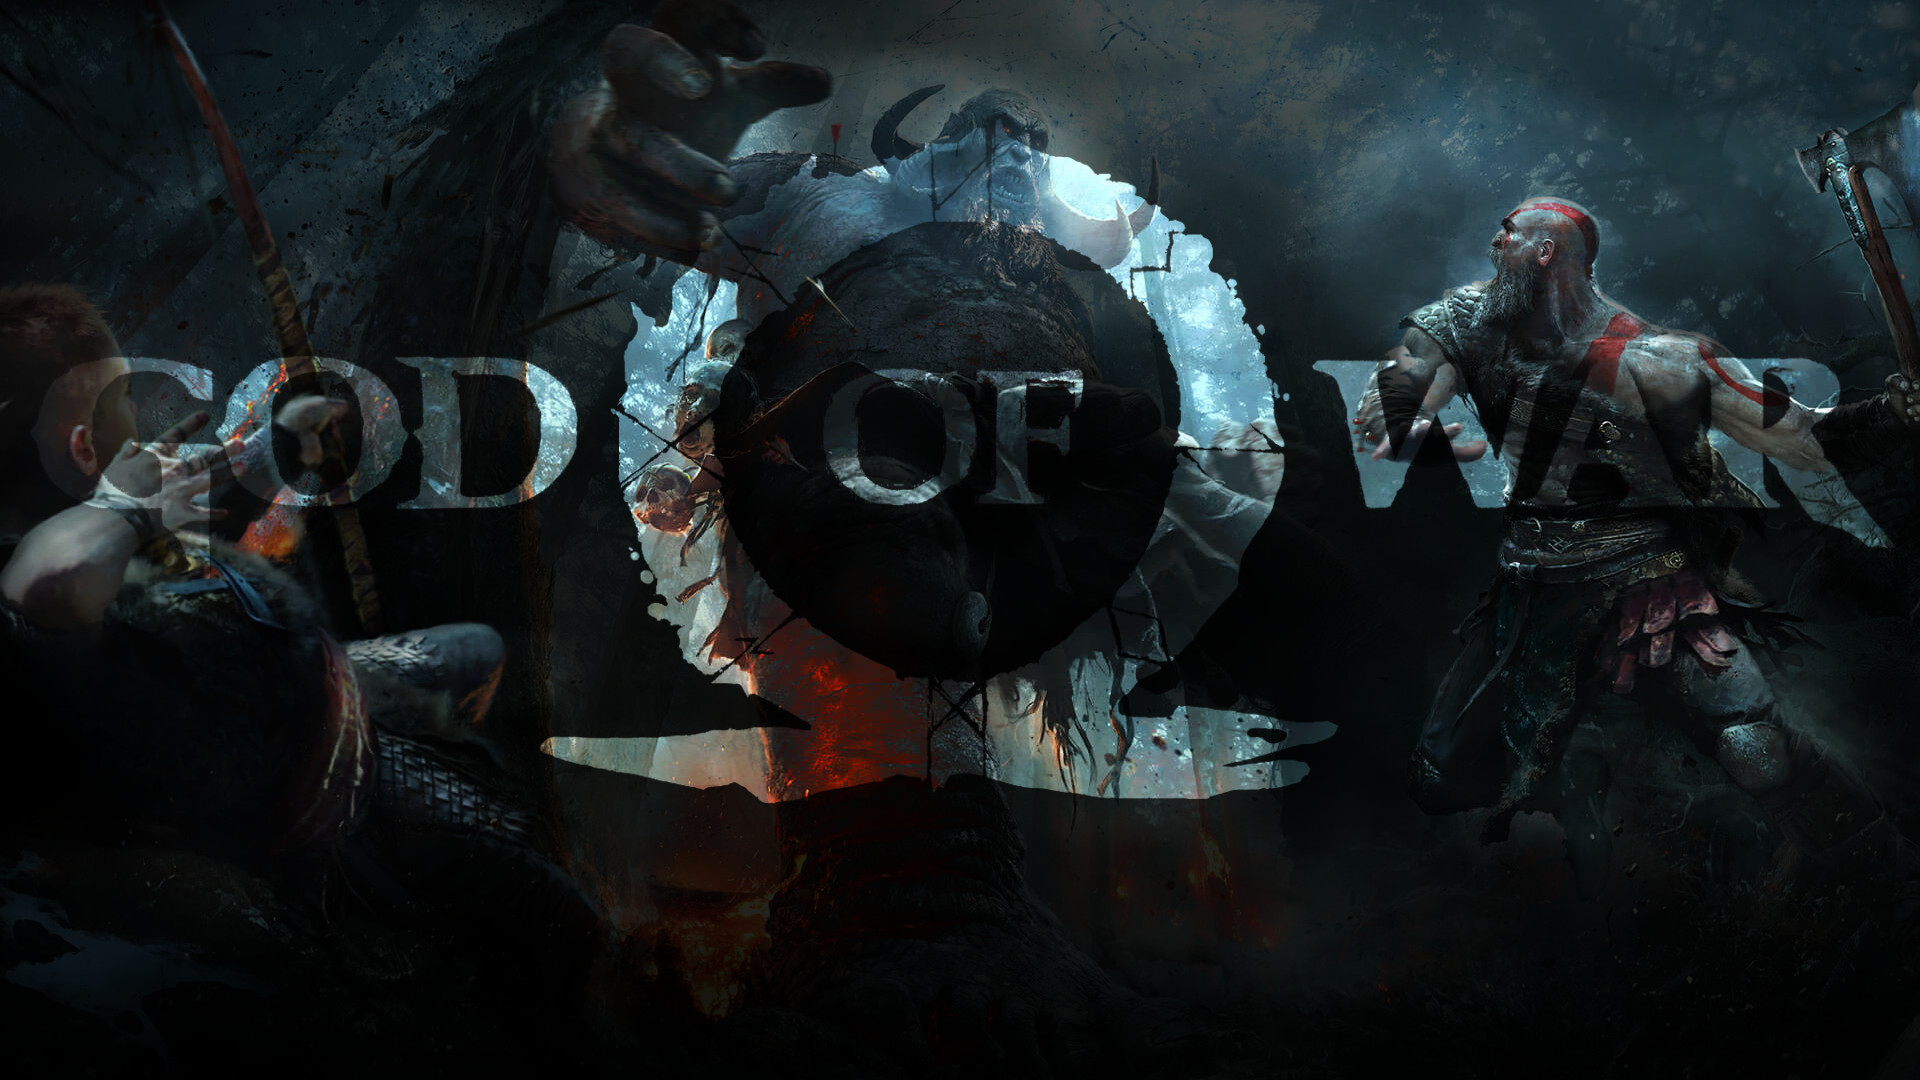 1920x1080 ... God of War PS4 Wallpaper 1080p by claterz